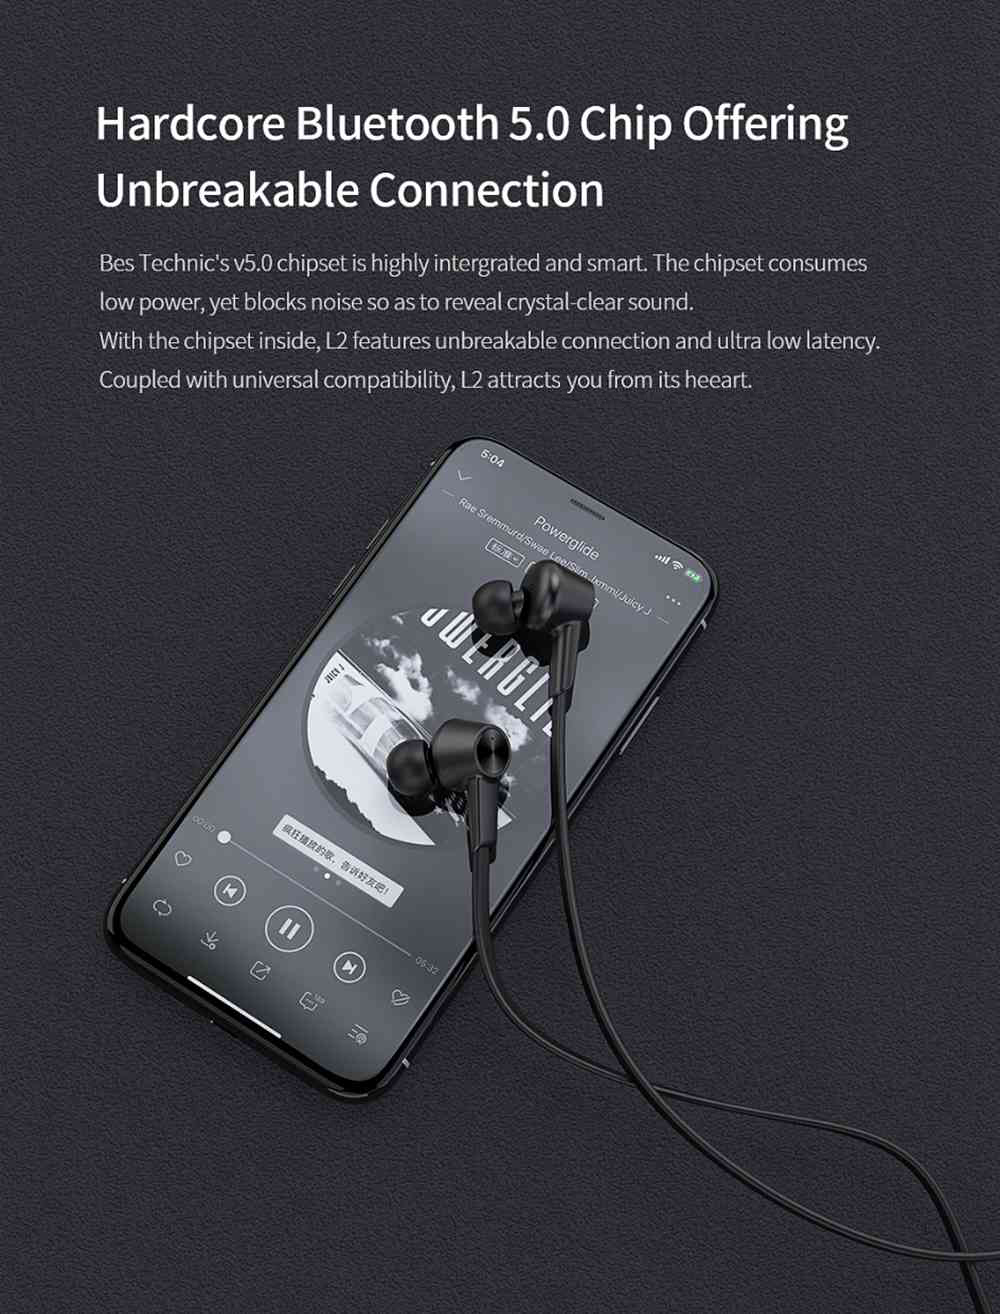 QCY L2 Bluetooth 5.0 Wired Earphones ANC Noise Canceling 13h Battery Life with Mic - Black